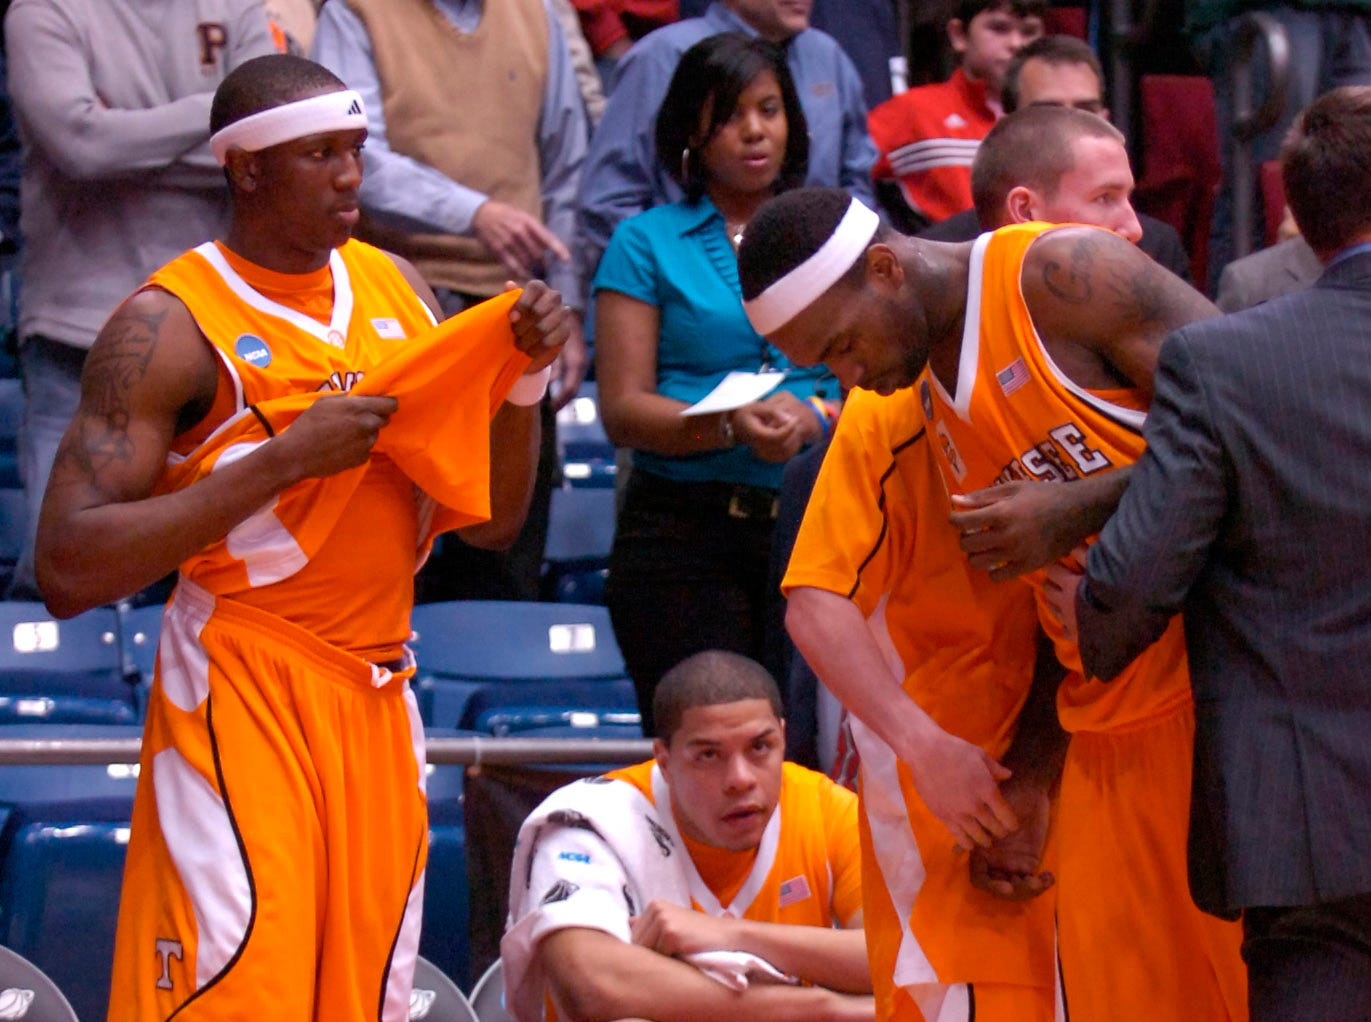 Tennessee's Tyler Smith goes to the bench after missing a shot for three points with one second remaining against Oklahoma State during the first round of the 2009 NCAA tournament in Dayton, OH on Friday. UT lost the game 77-75 ending their post season play.